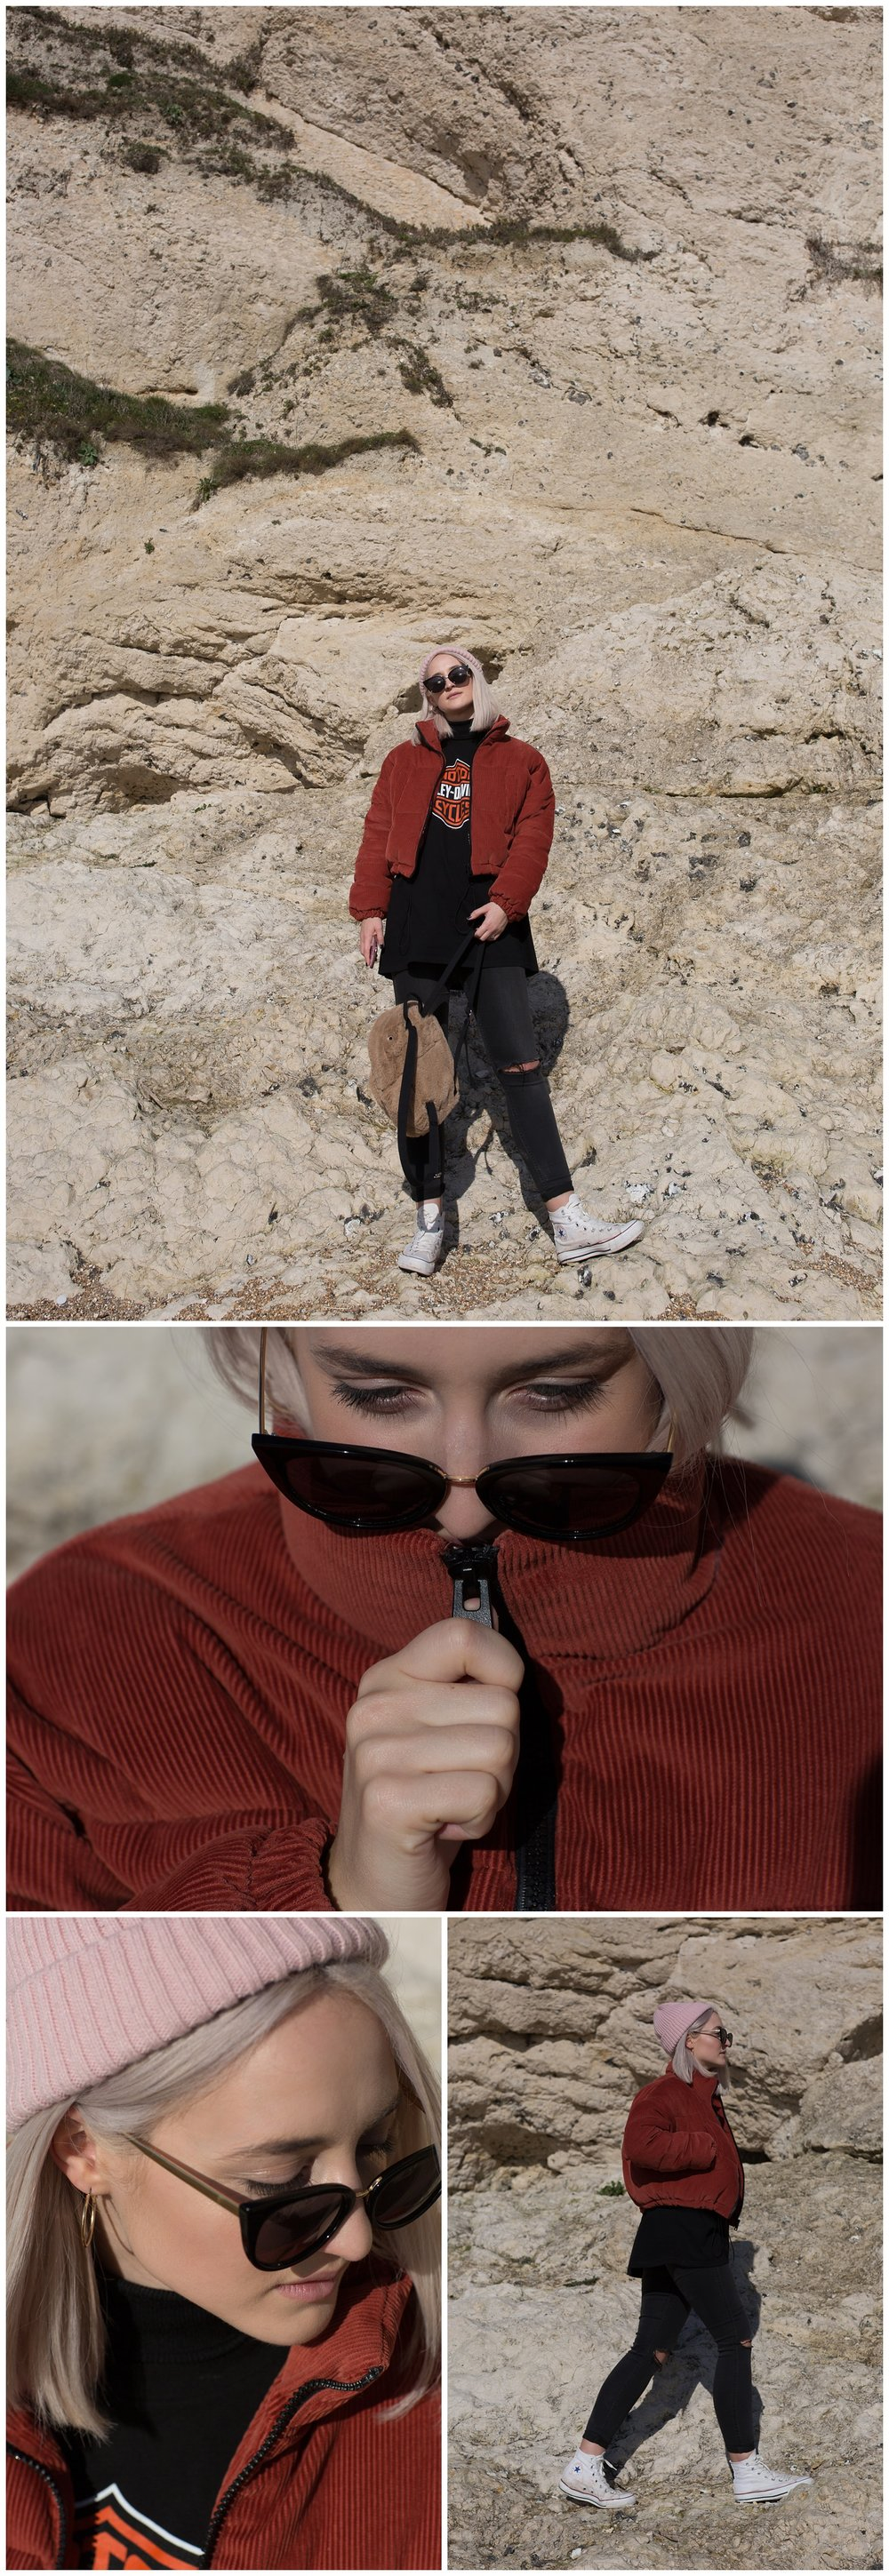 Red Corduroy Puffer Jacket - Dorset - Durdle Door - Fashion Blogger - Jess Withey - Blog